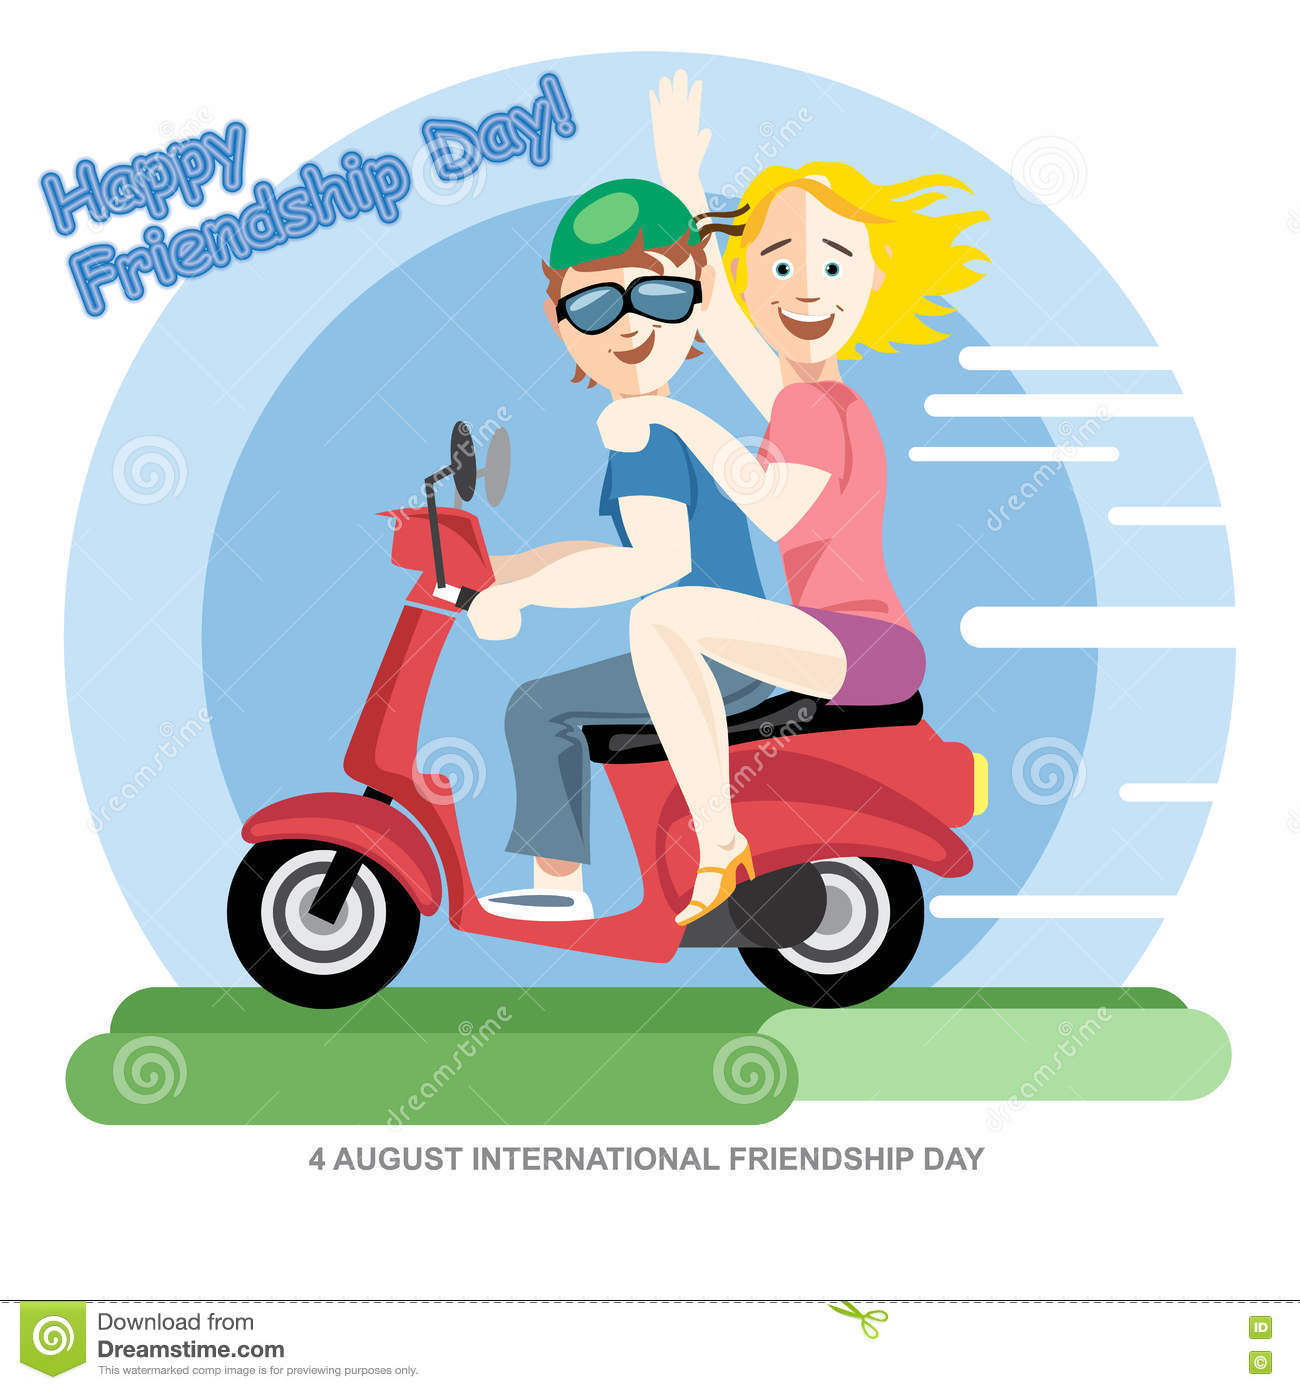 Happy Friendship Day Card 4 August Best Friends Girls Riding A Red Motorcycle Stock Vector Illustration Of Happy Blue 74366655